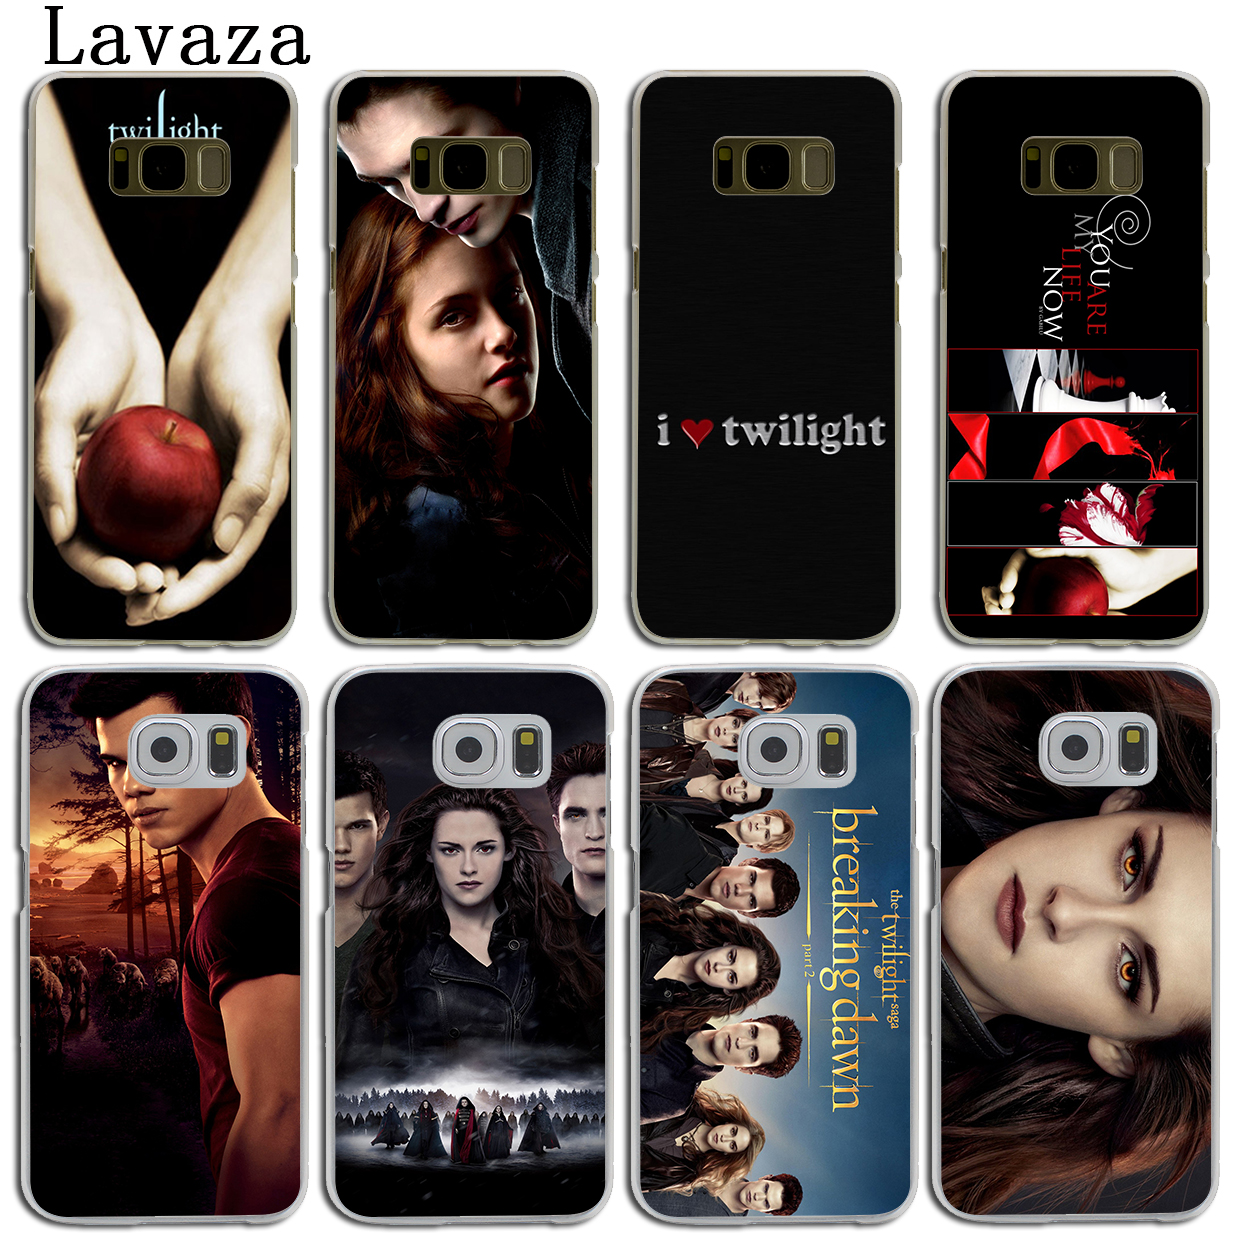 Amicable Lavaza The Twilight Saga Breaking Dawn Part 1 New Moon Hard Phone Case For Samsung Galaxy S6 S7 Edge S10 E S10e S8 S9 Plus Phone Bags & Cases